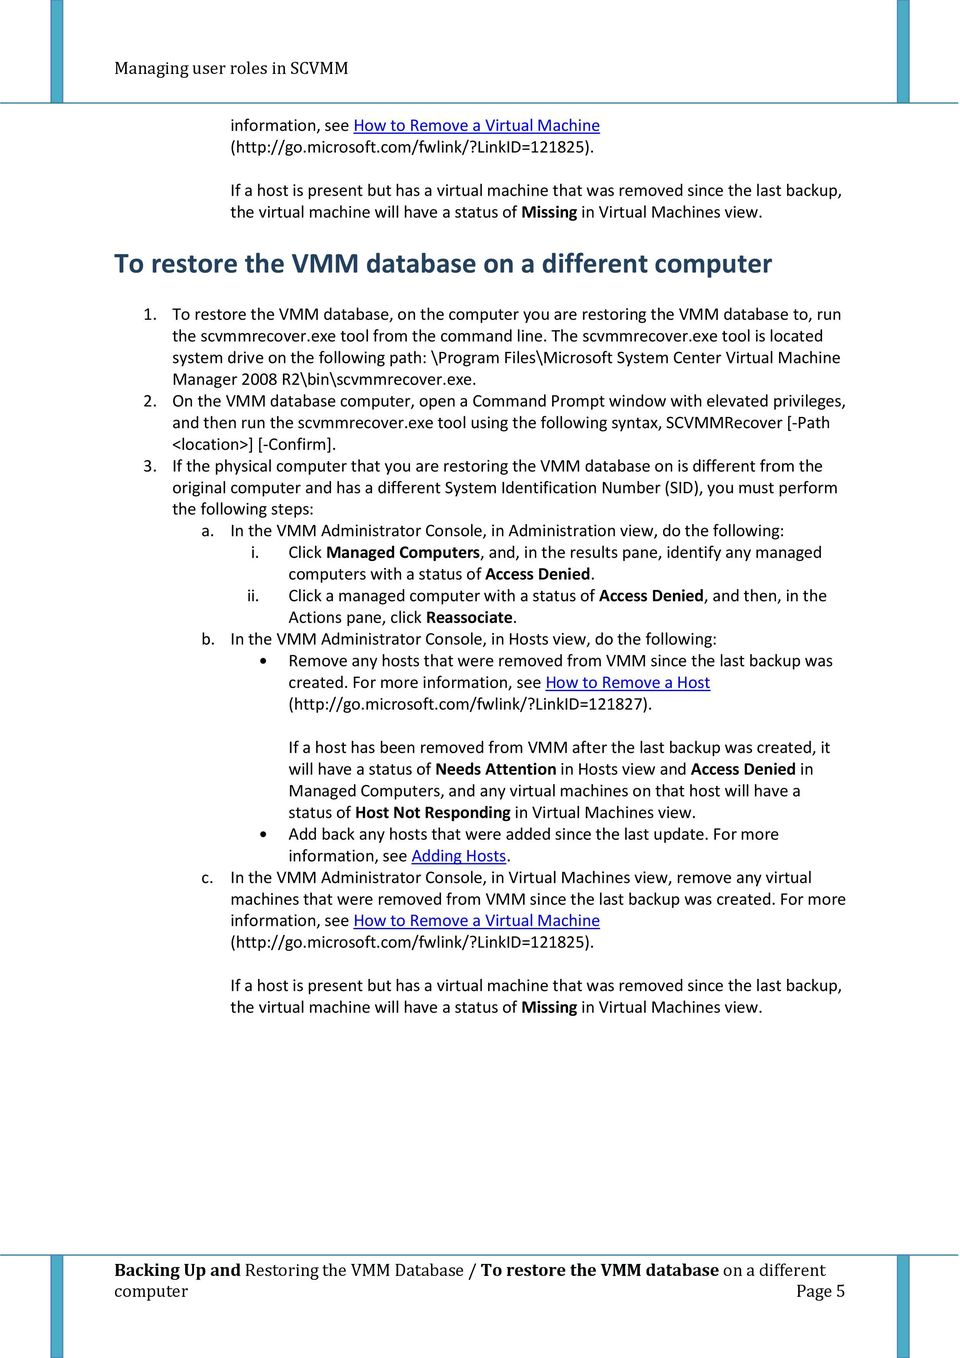 To restore the VMM database on a different computer 1. To restore the VMM database, on the computer you are restoring the VMM database to, run the scvmmrecover.exe tool from the command line.